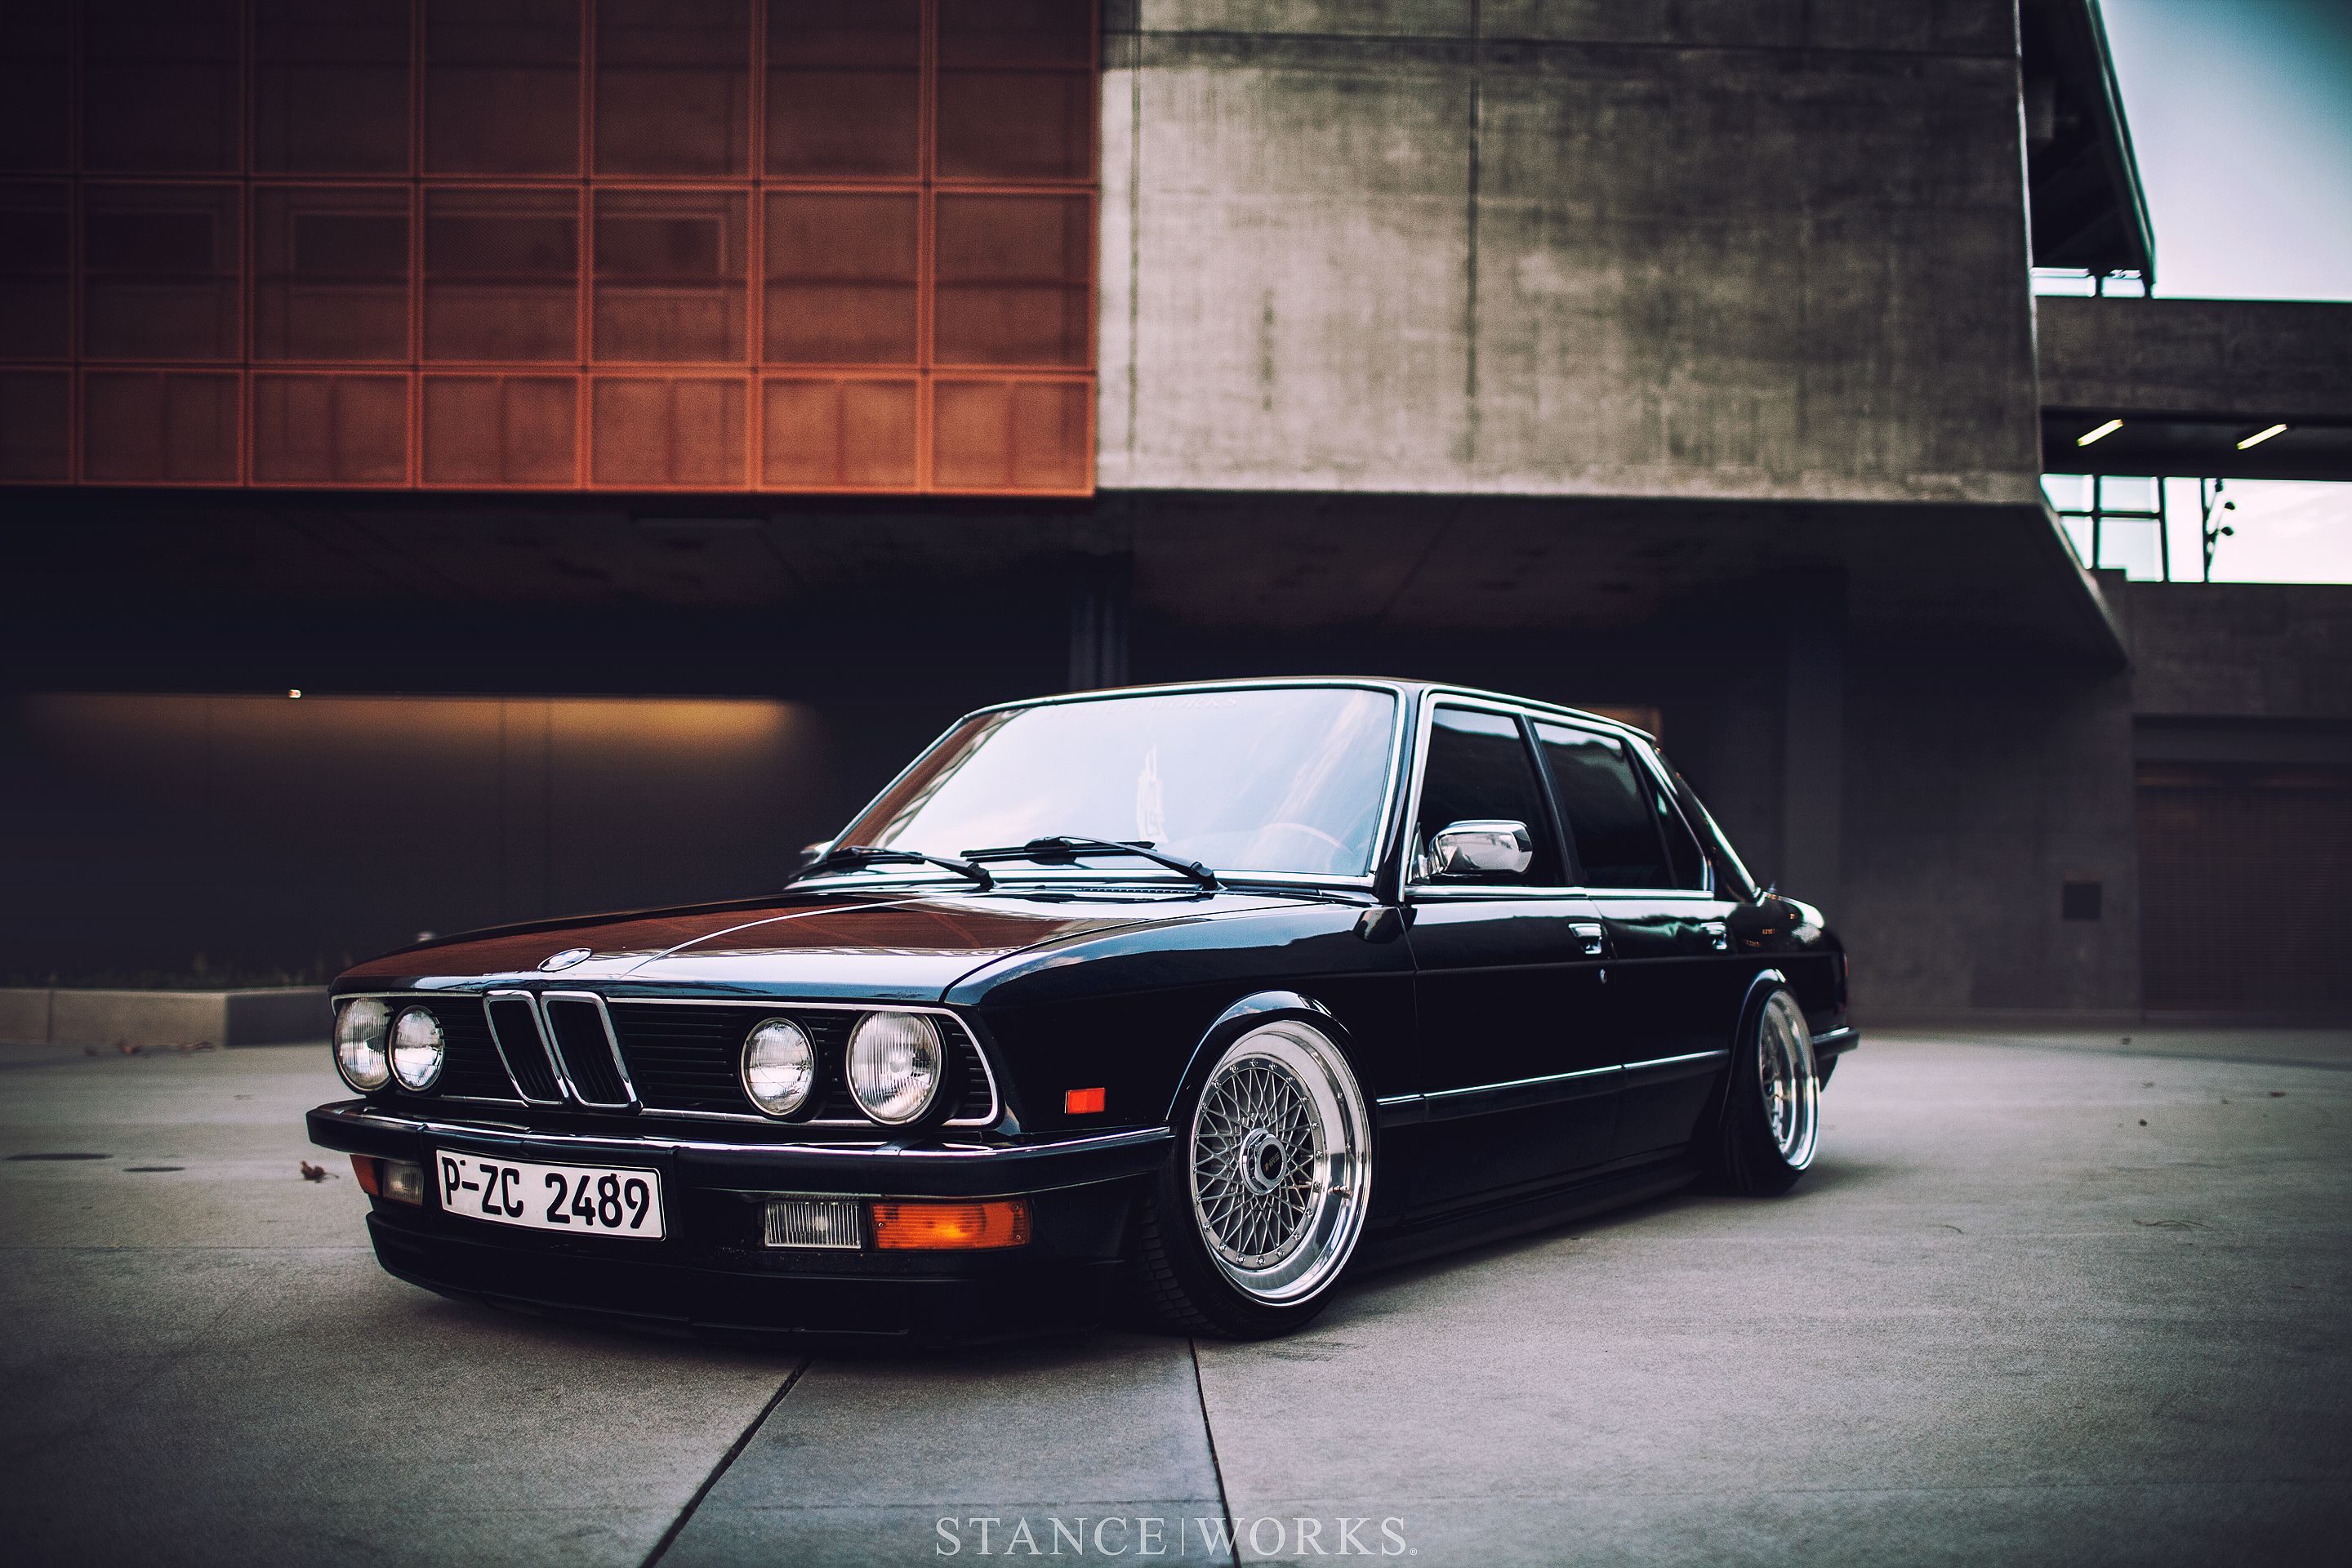 Pin by Rahmat Hussain on Bmw | Pinterest | Whittling and BMW